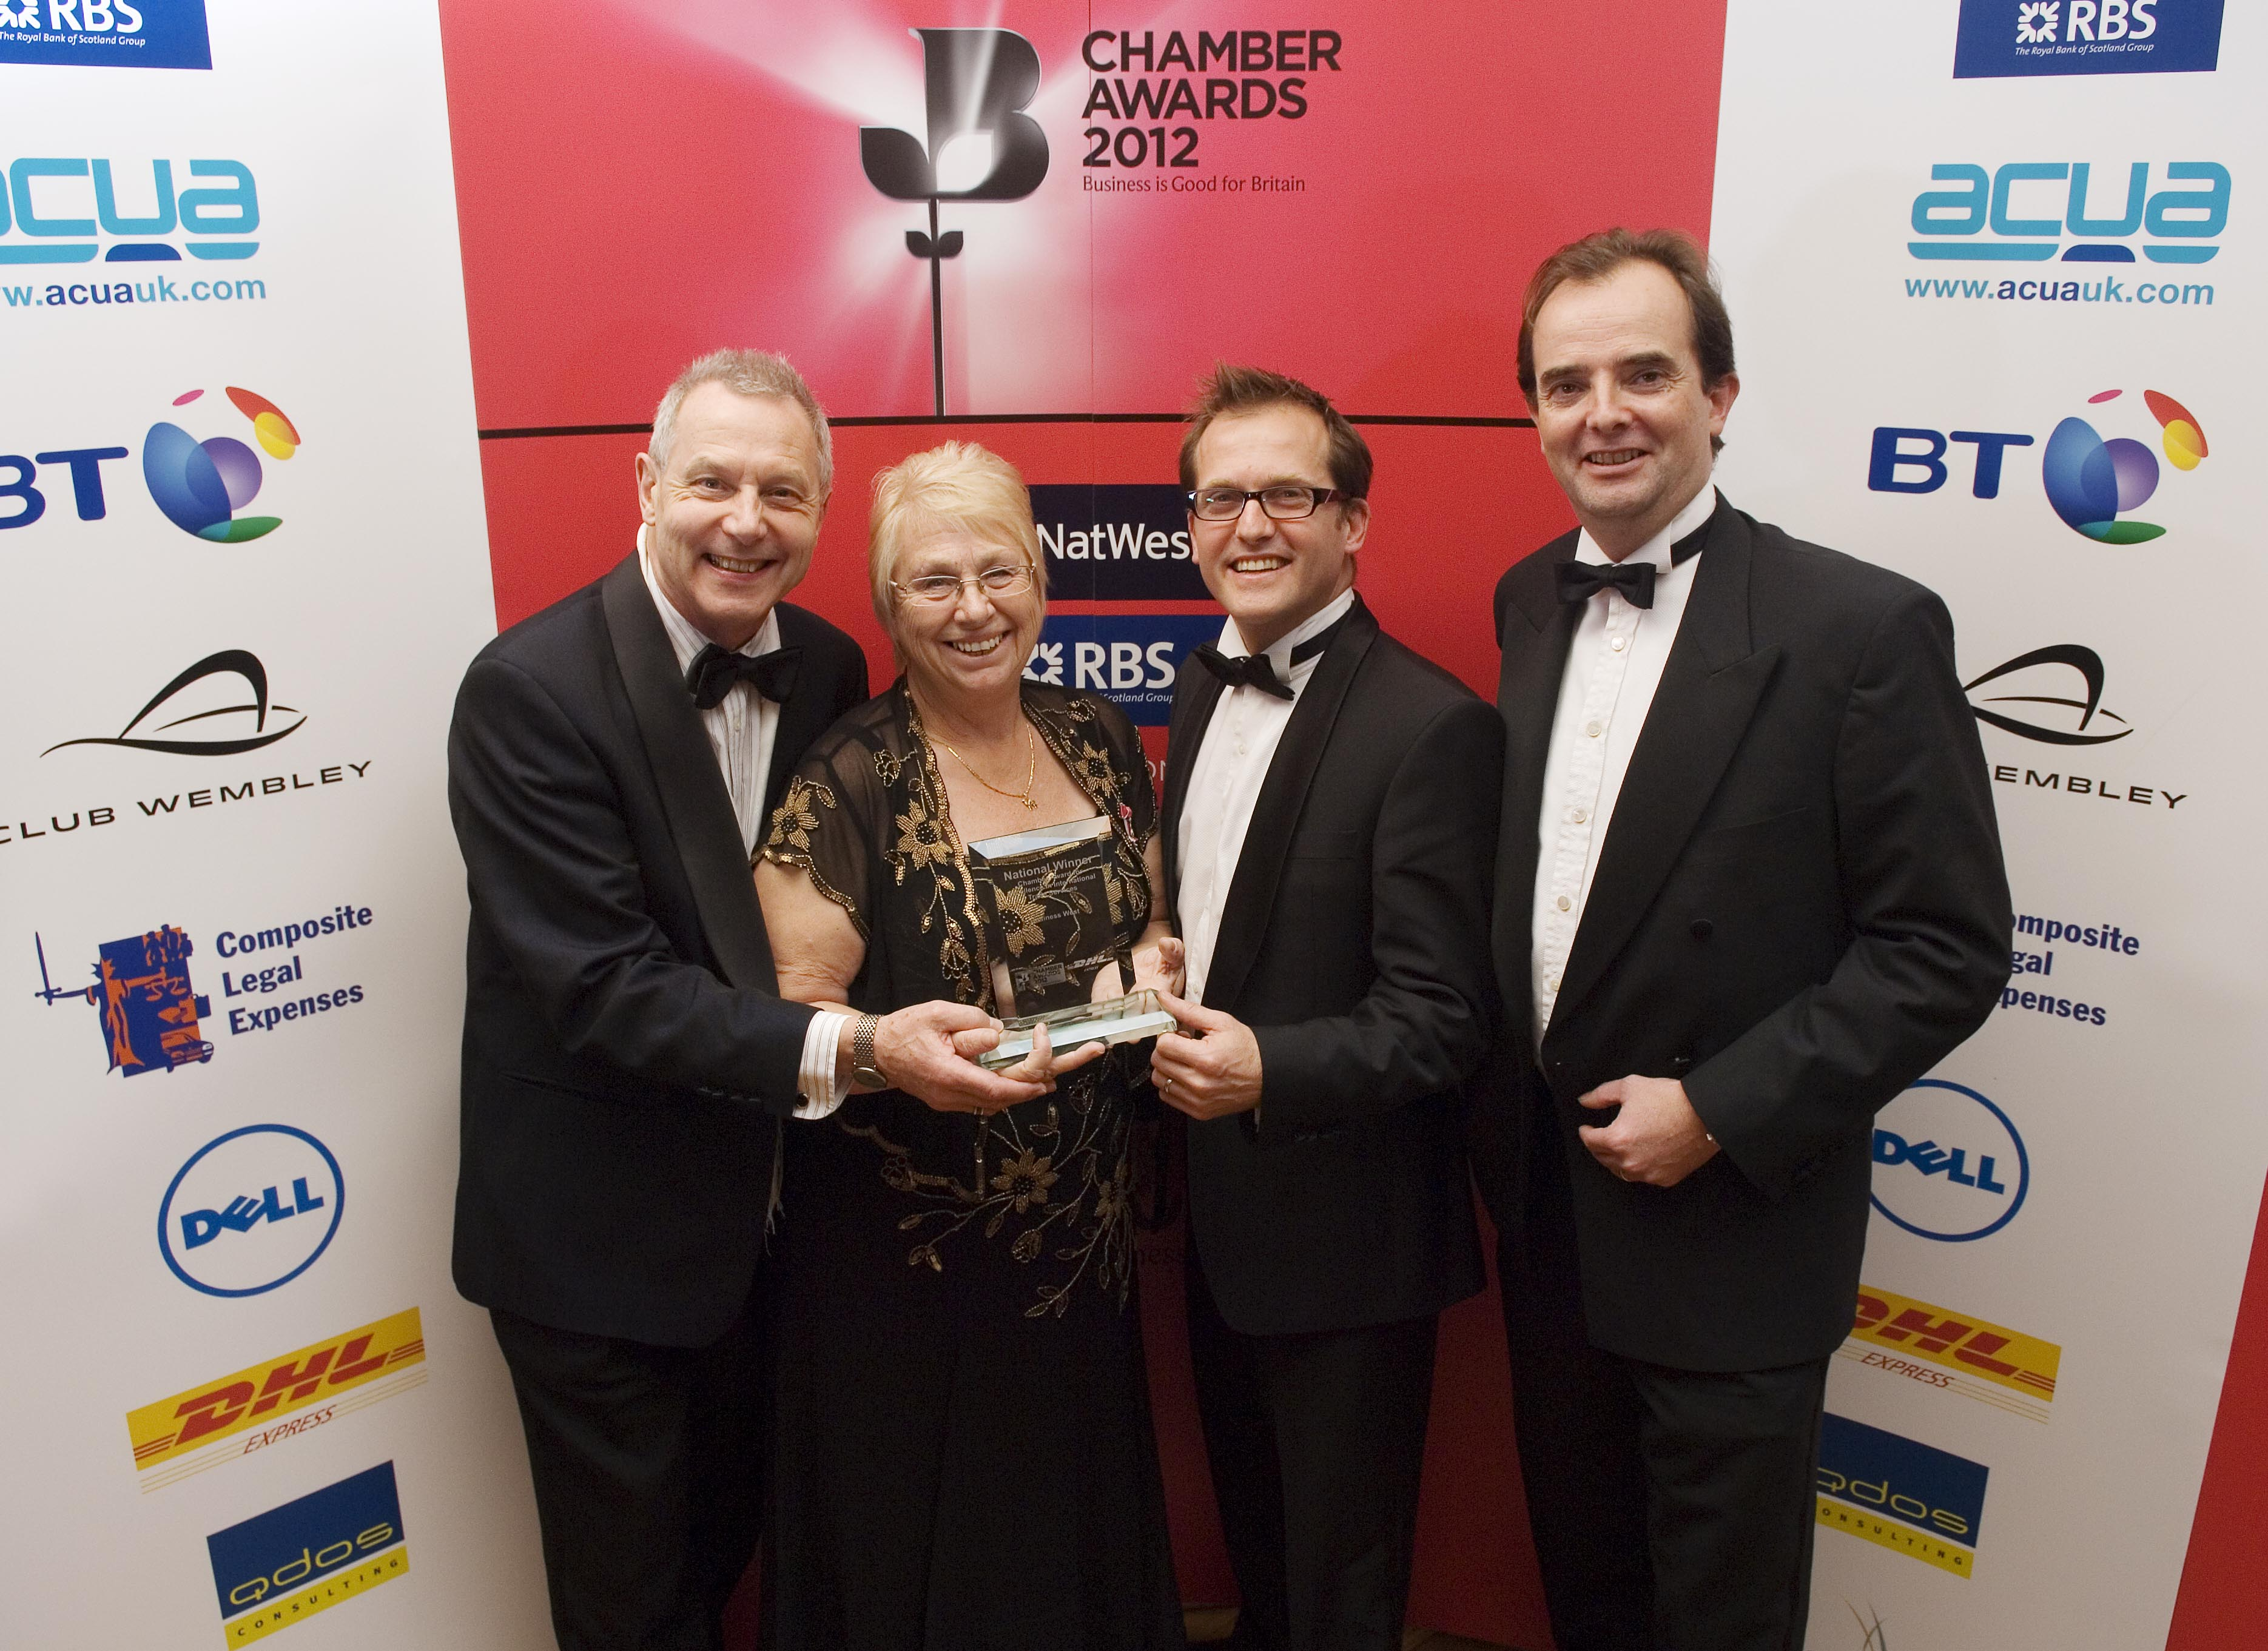 Top award recognises Business West's exporting advice prowess